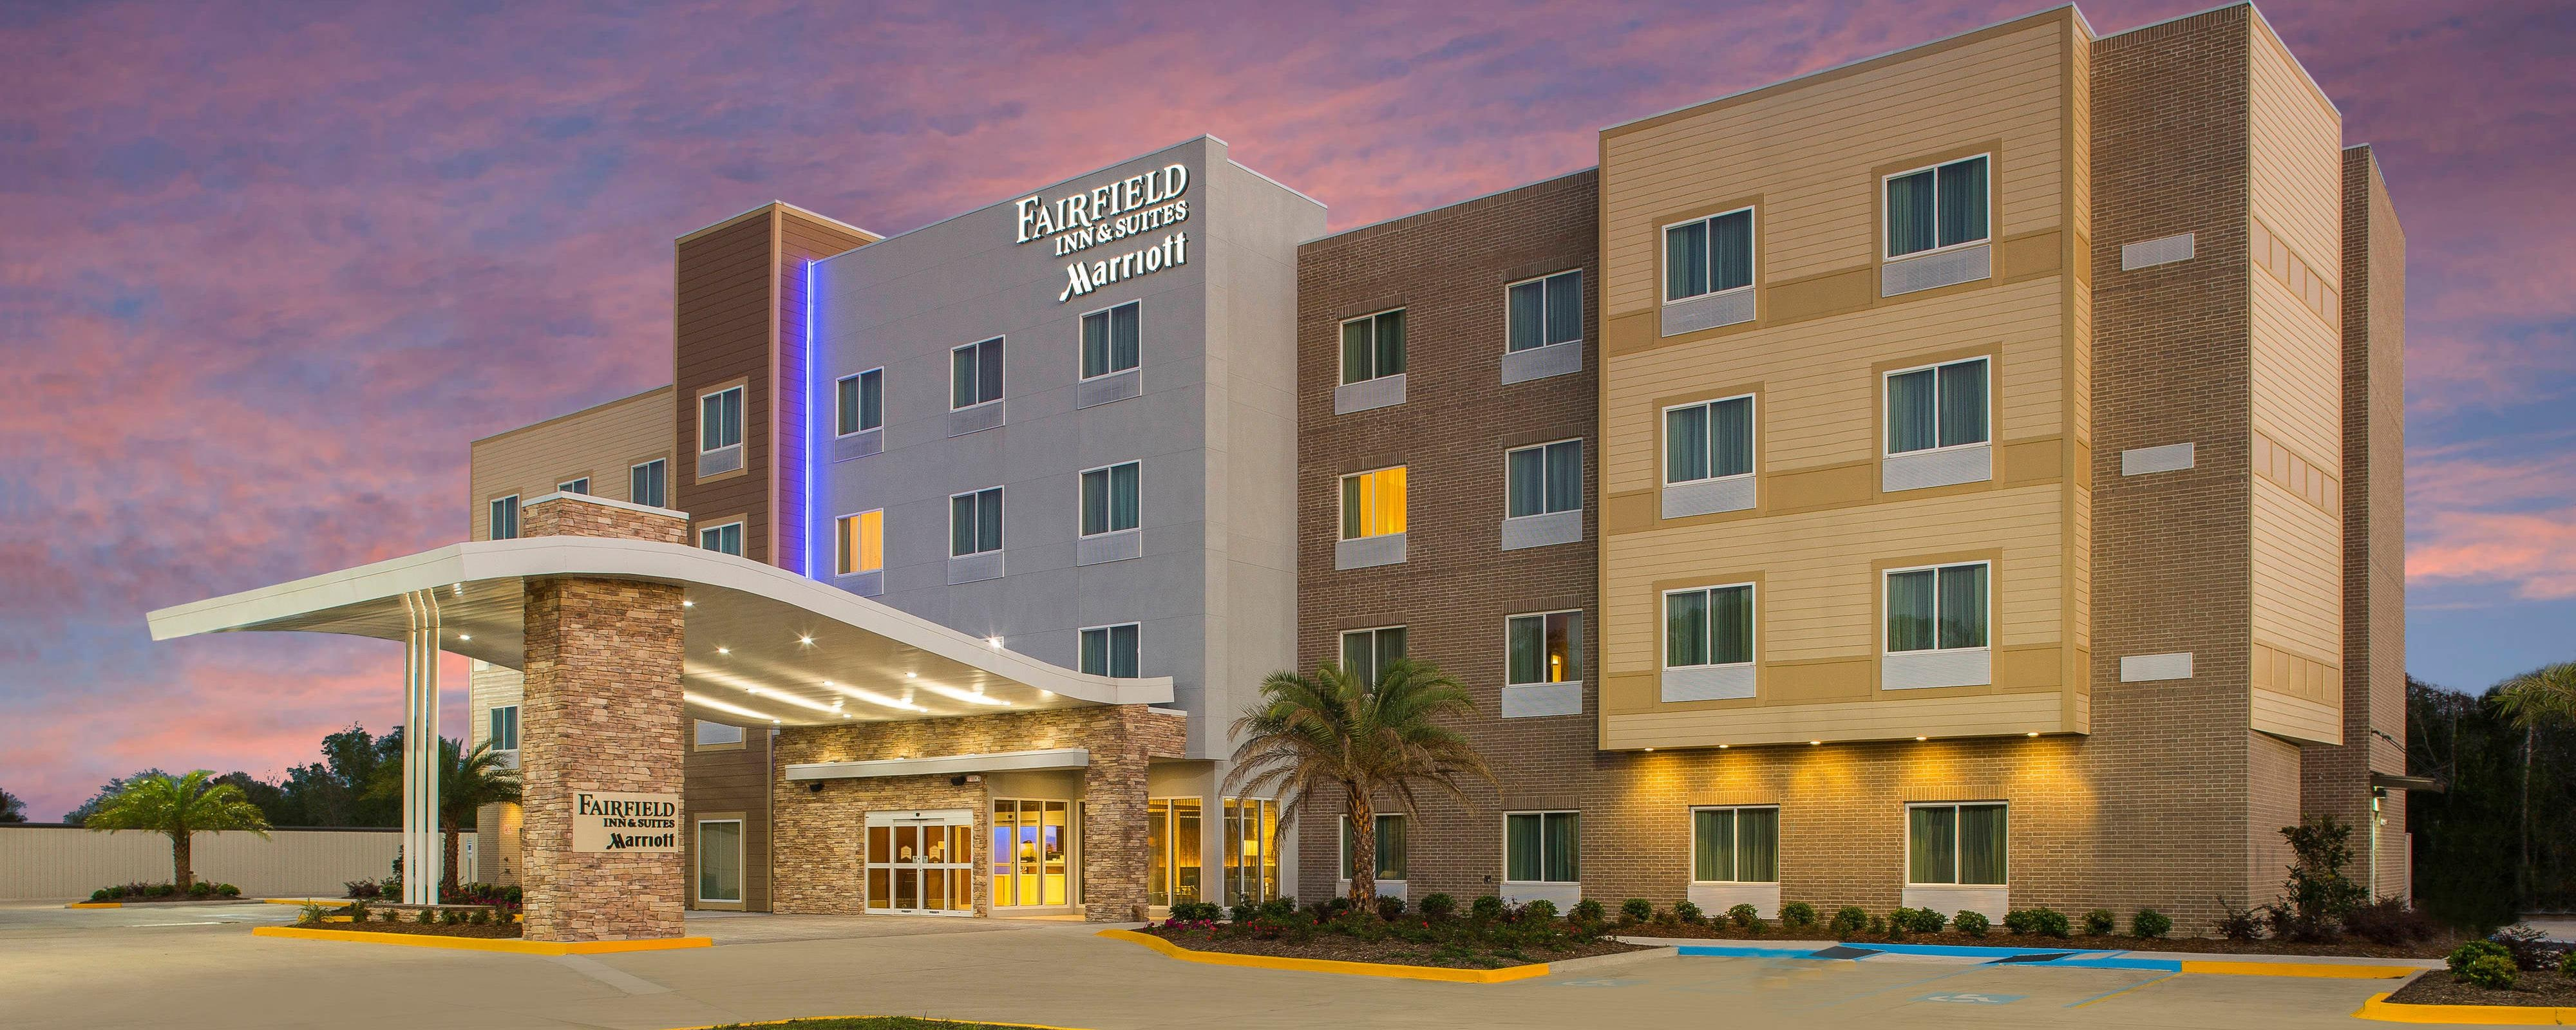 Fairfield Inn Suites Cut Off Galliano Earn Rewards Points And Stay Productive When Traveling To